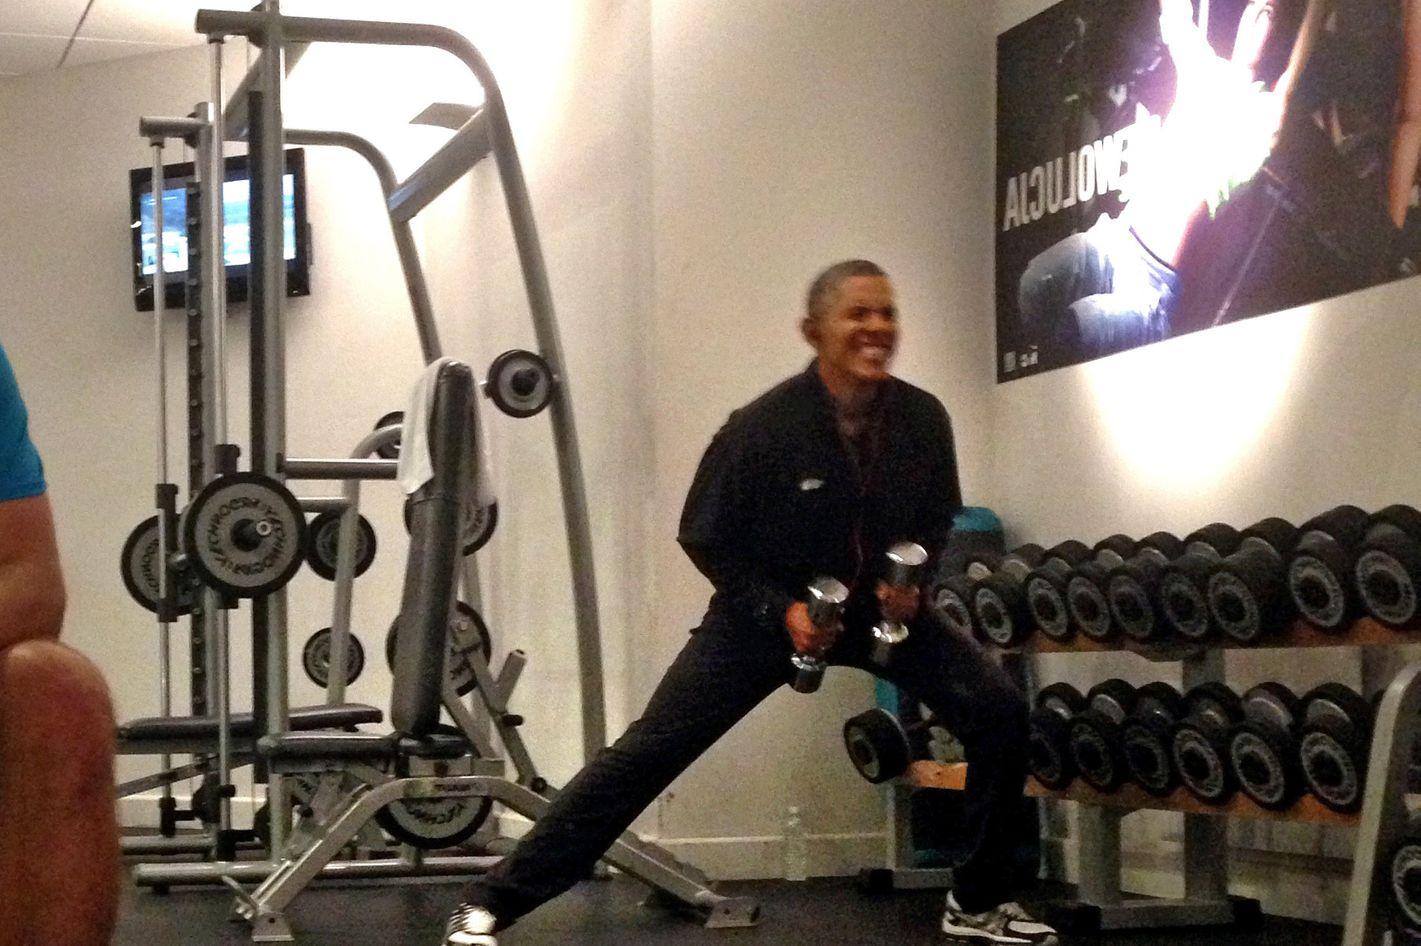 barack obama works out an awkward photo essay